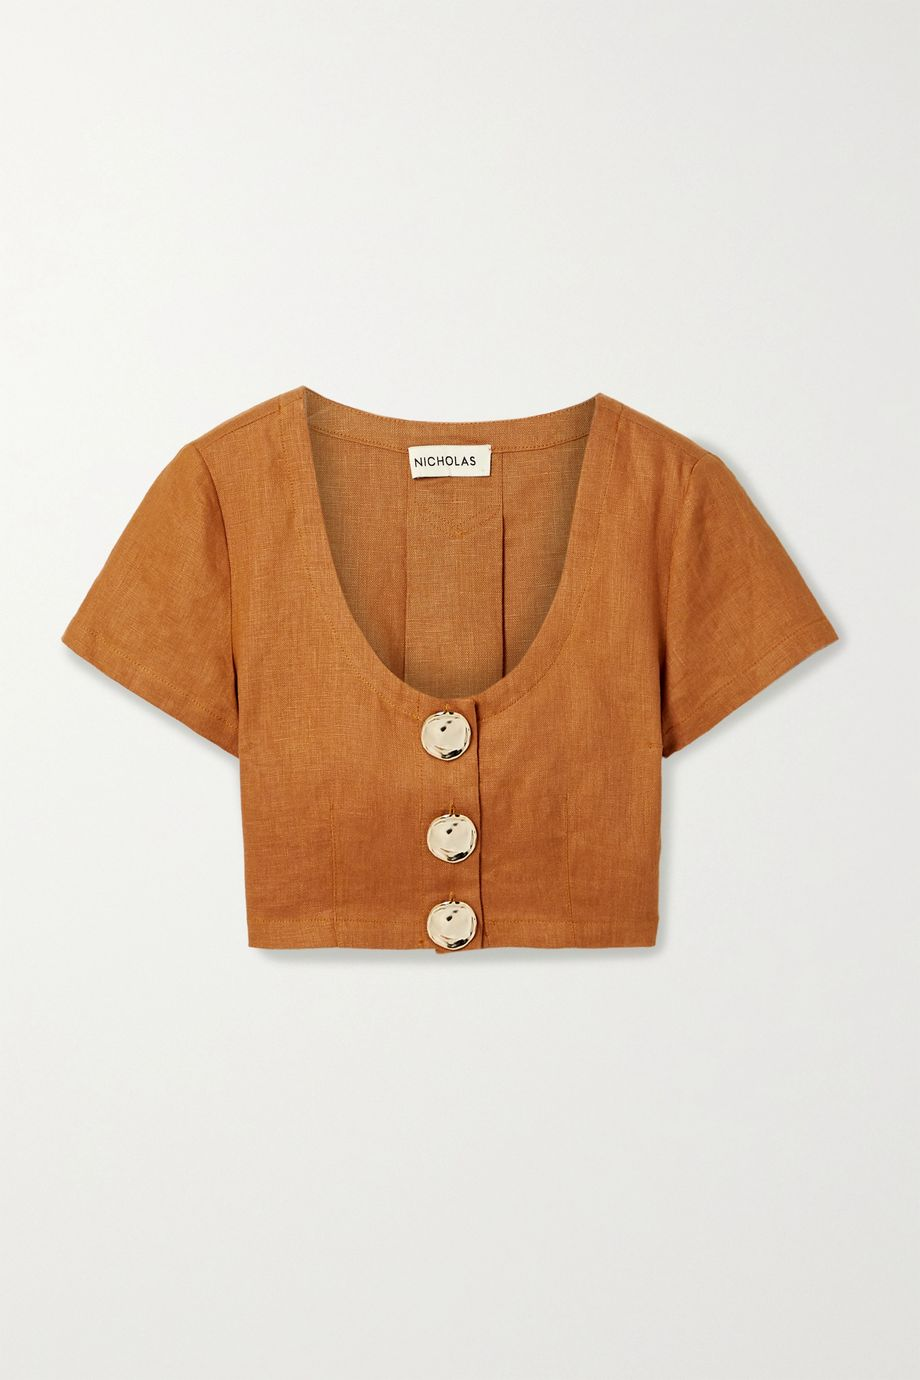 NICHOLAS Lou pleated linen cropped top